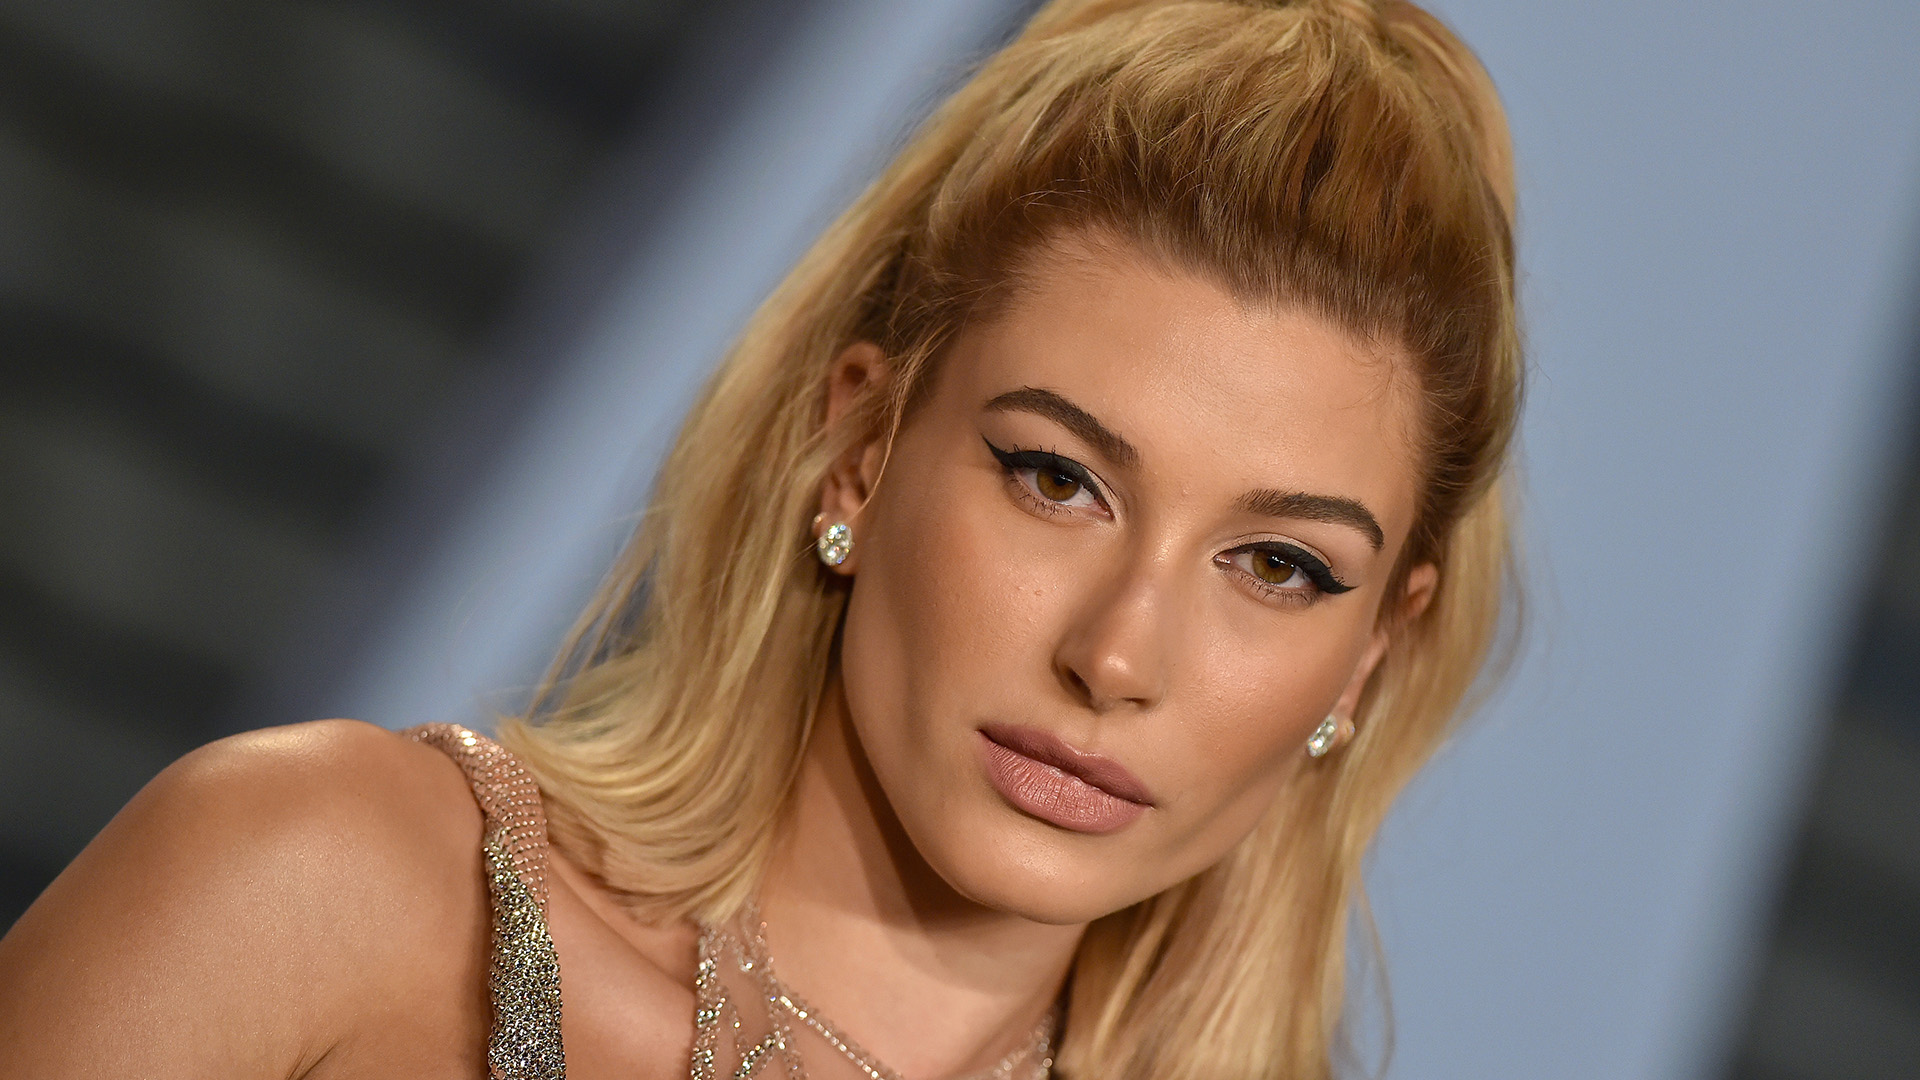 hailey baldwin celebrity hd wallpaper 64631